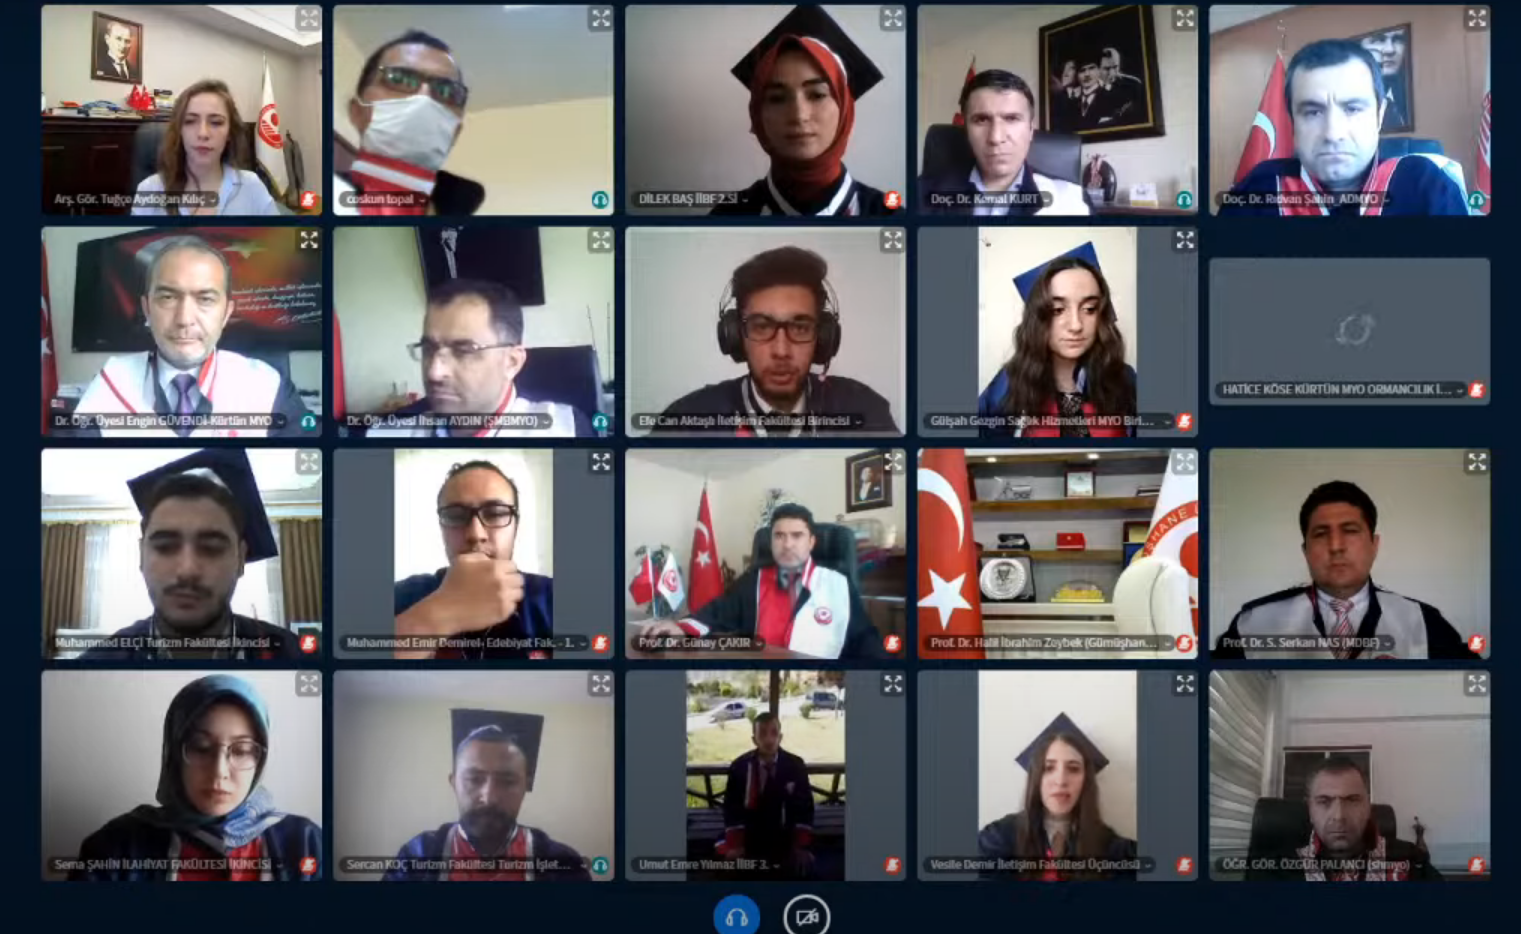 Virtual Graduation Ceremony was held at our University